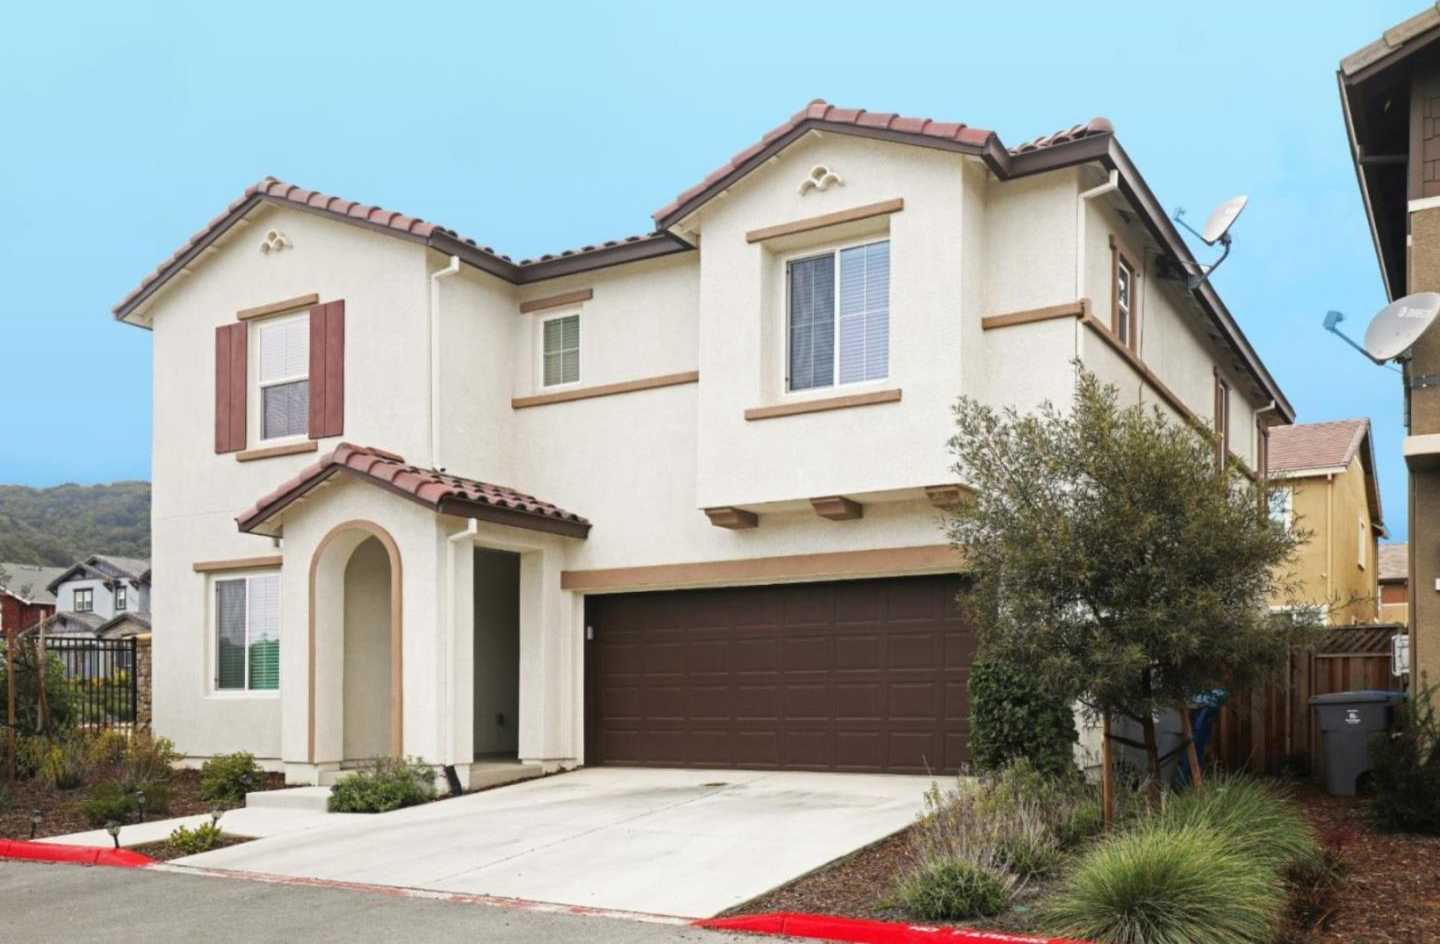 $849,900 - 4Br/3Ba -  for Sale in Gilroy